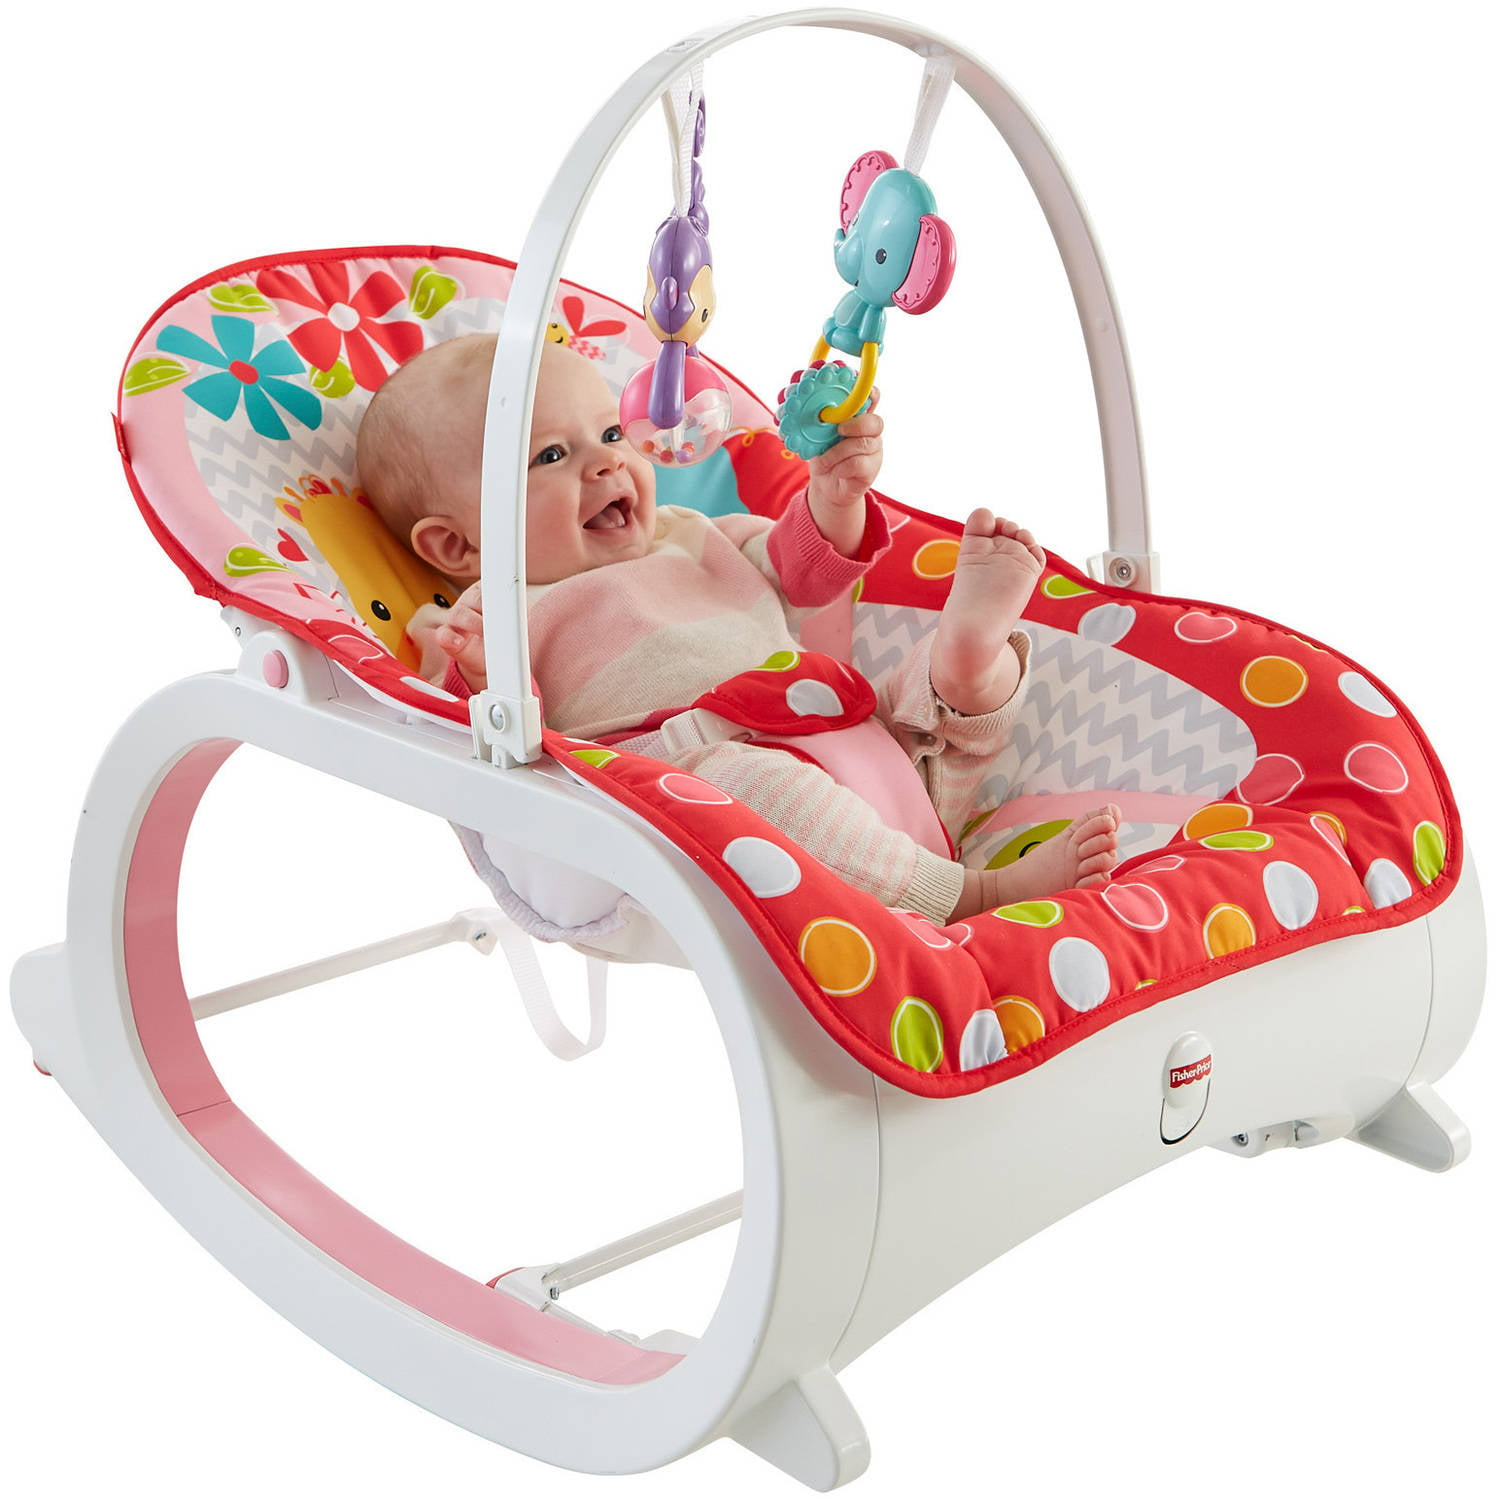 Pleasing Fisher Price Infant To Toddler Rocker Walmart Com Evergreenethics Interior Chair Design Evergreenethicsorg